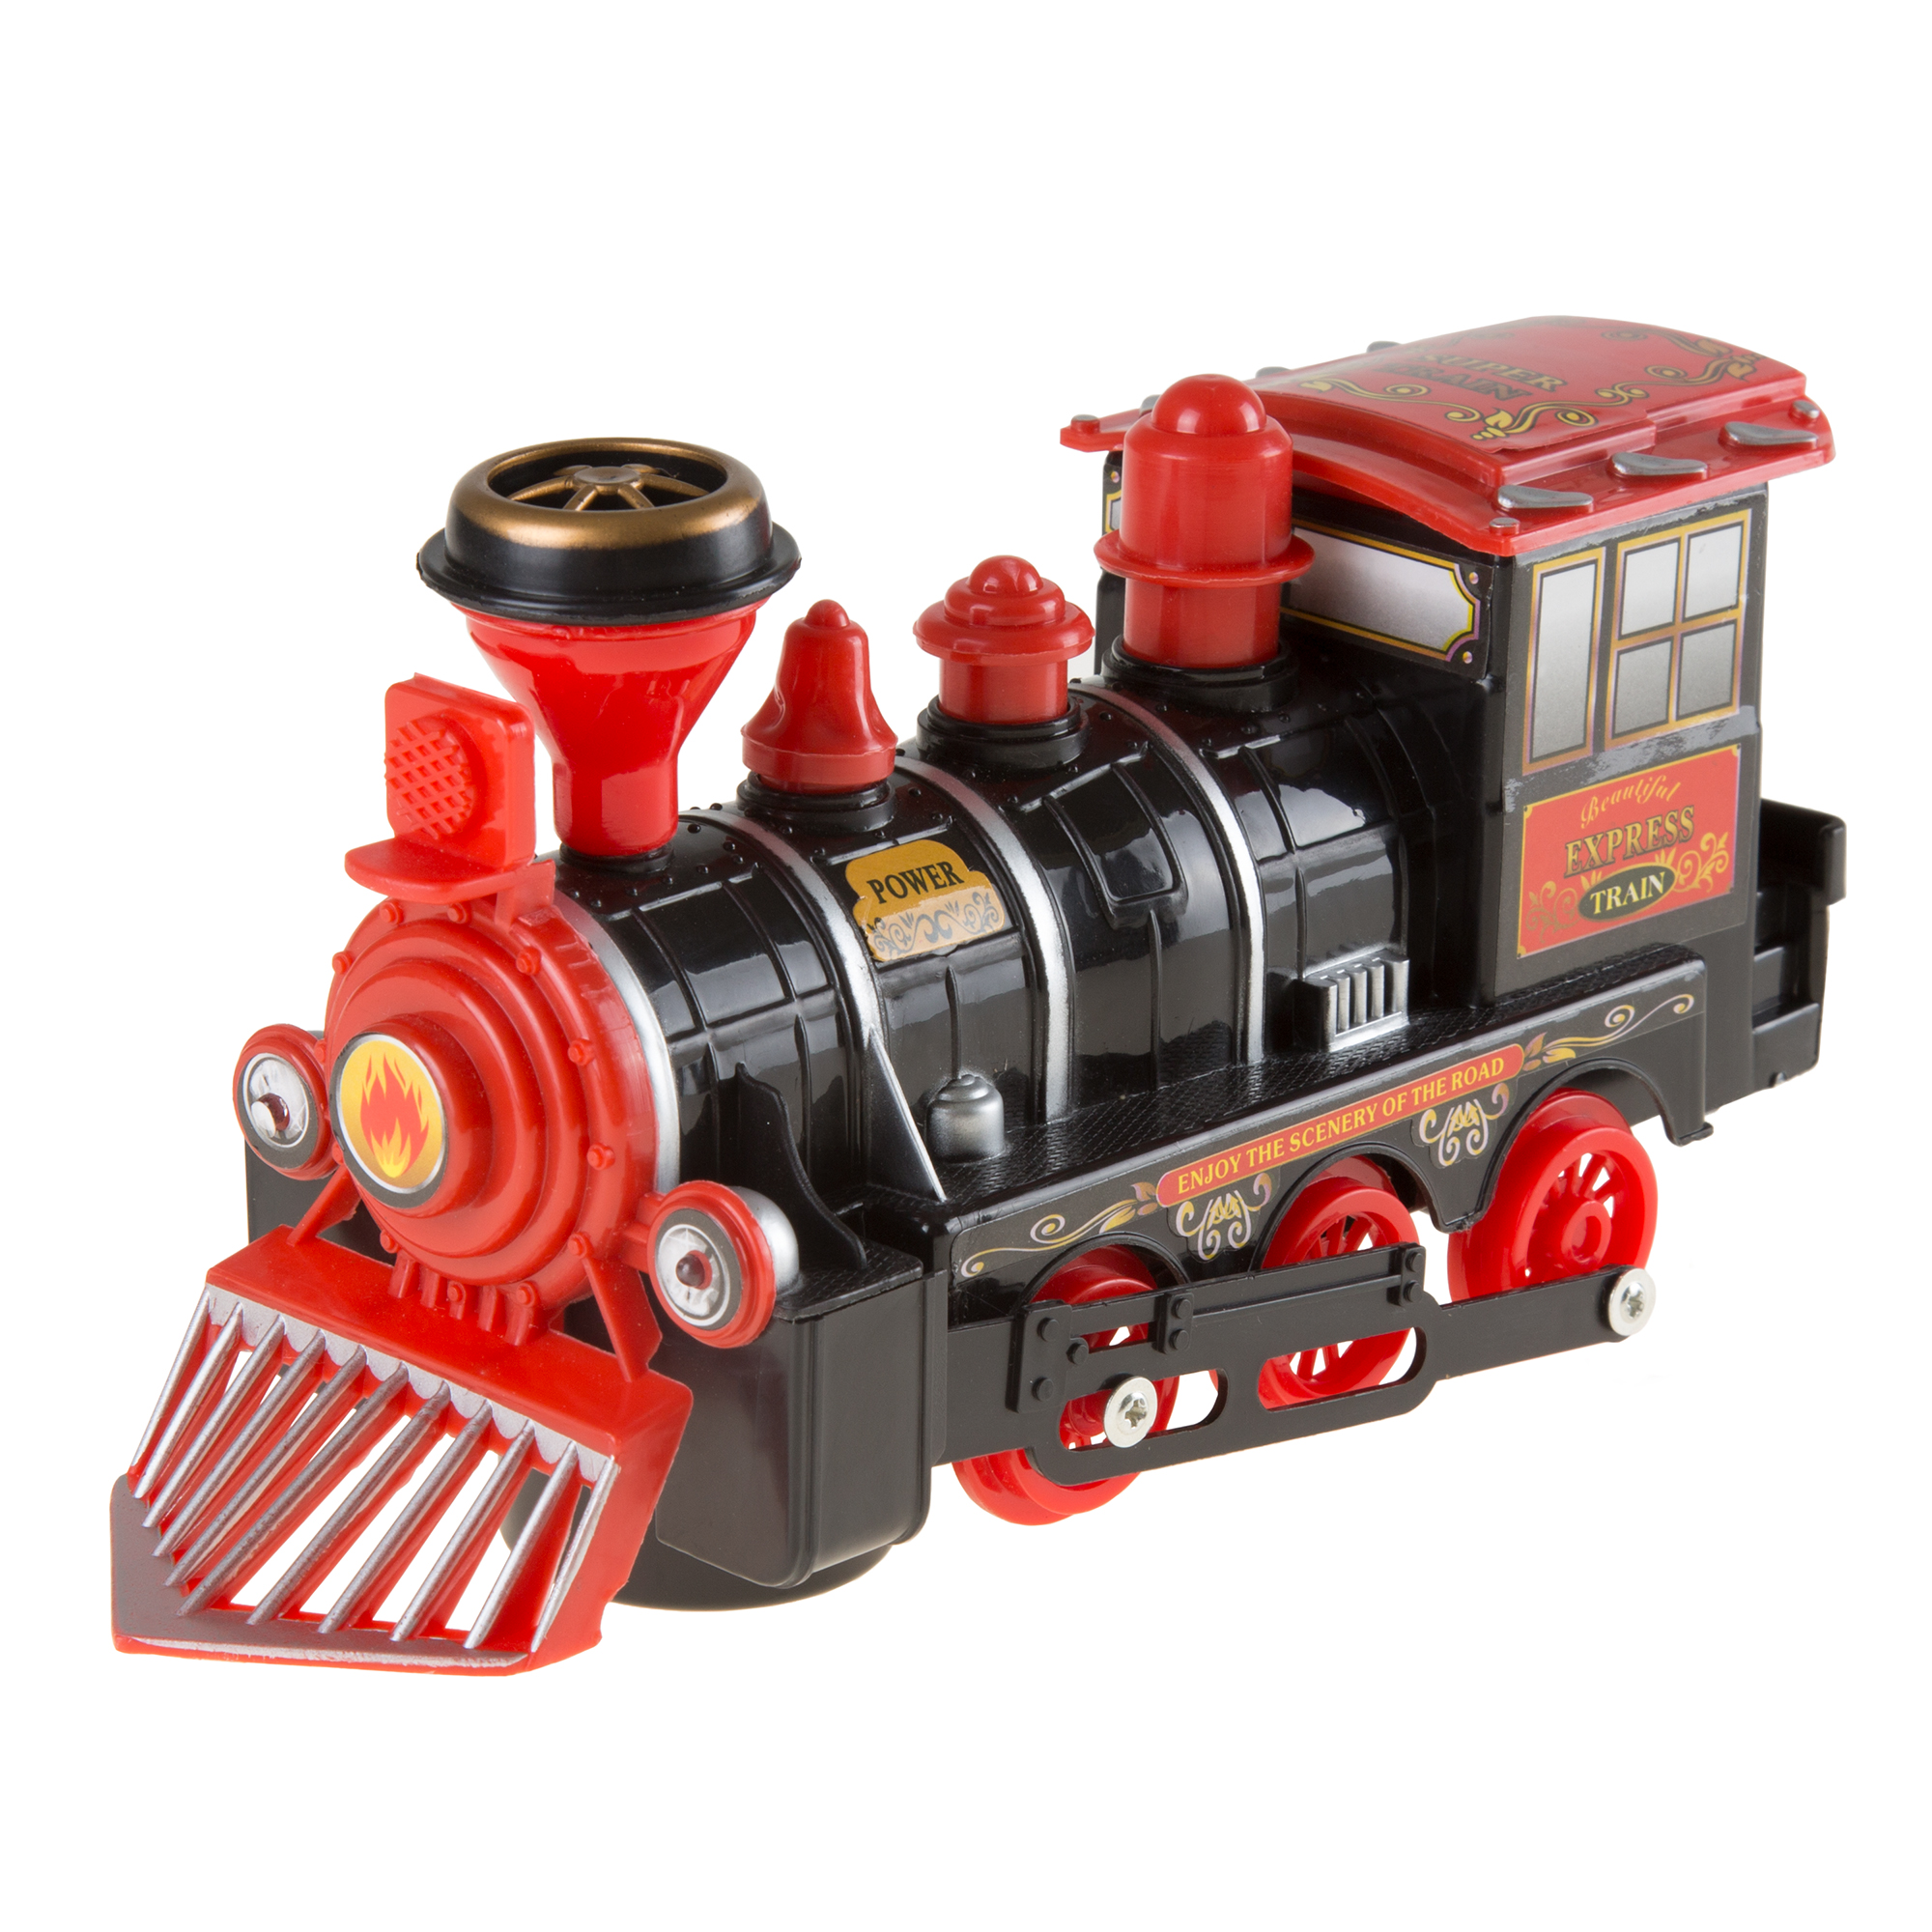 Toy Train Locomotive Engine Car with Battery-Powered Lights, Sounds and Bump-n-Go Movement... by Trademark Global LLC